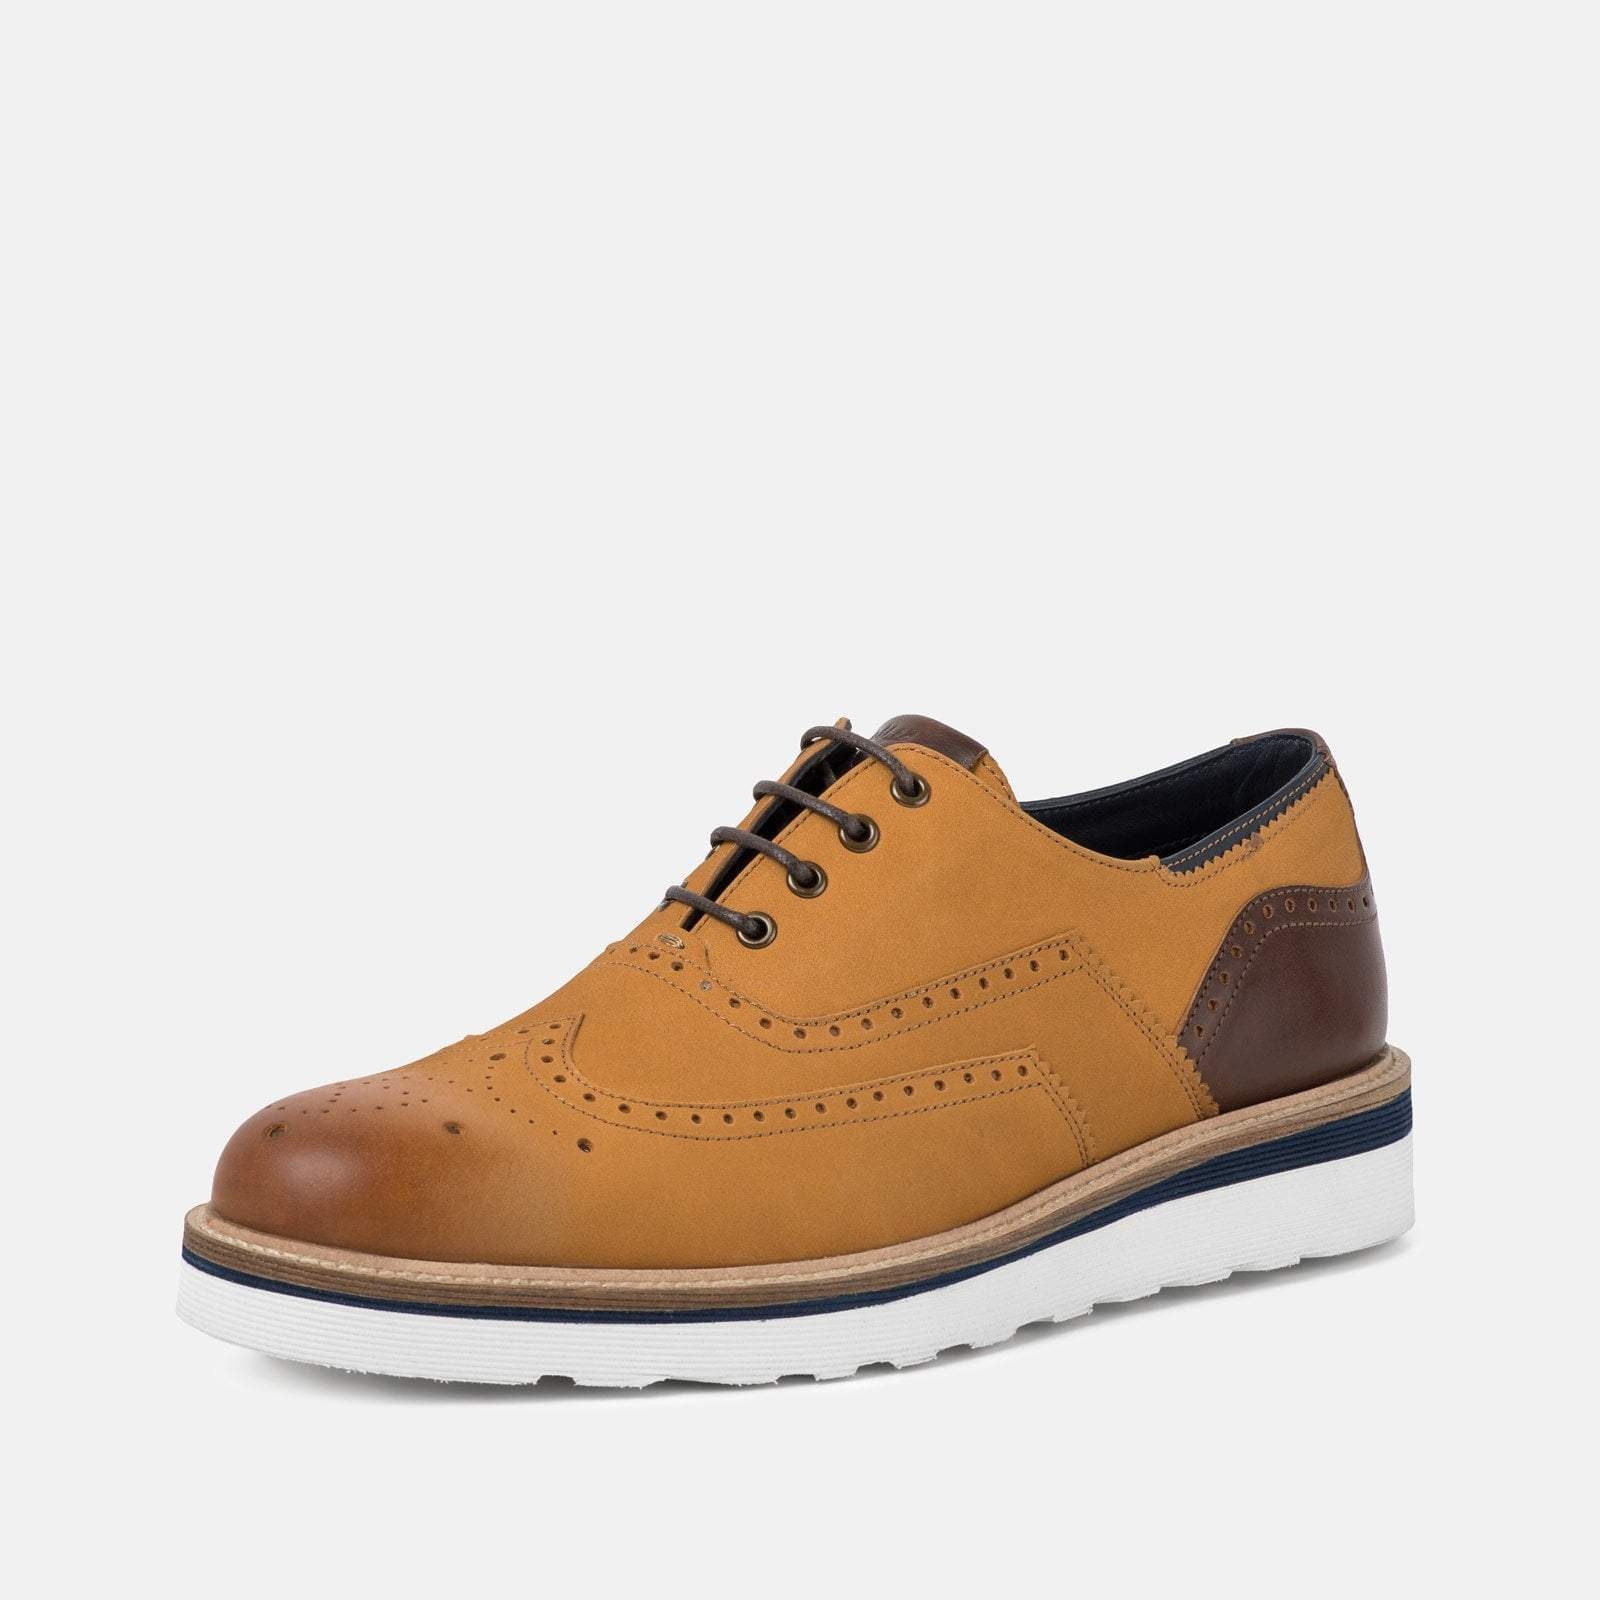 Goodwin Smith Footwear UK 6 / EURO 39 / US 7 / Black / Leather HORNBY TAN